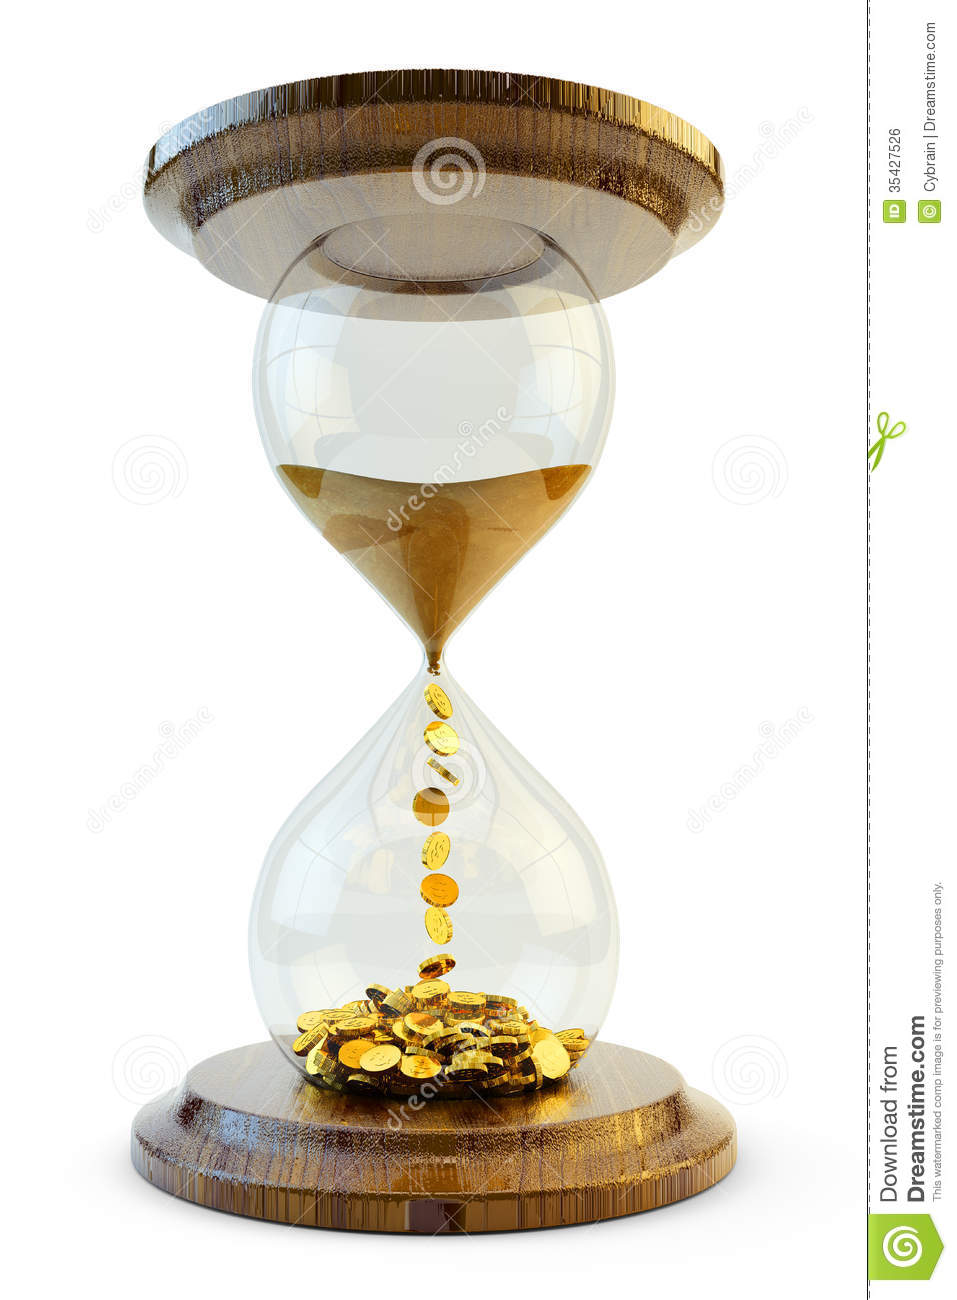 time is money concept royalty free stock image   image 35427526